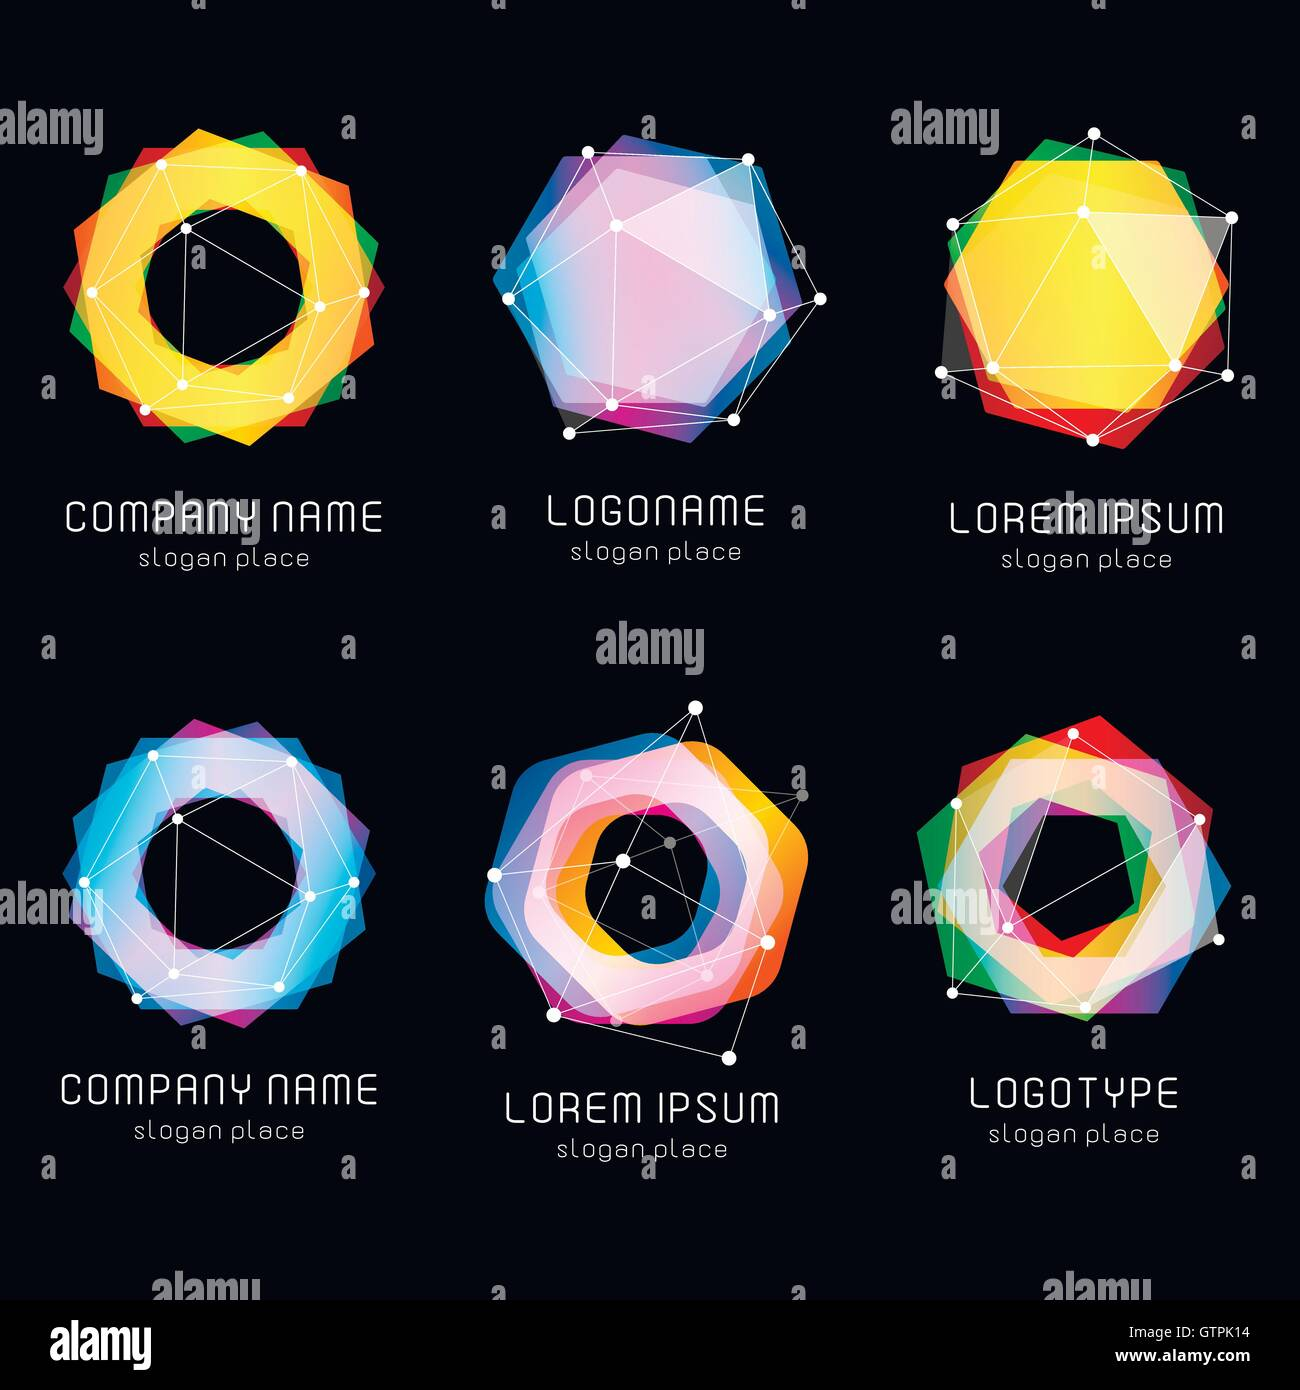 Unusual abstract geometric shapes vector logo set. Circular, polygonal colorful logotypes collection on the black - Stock Image